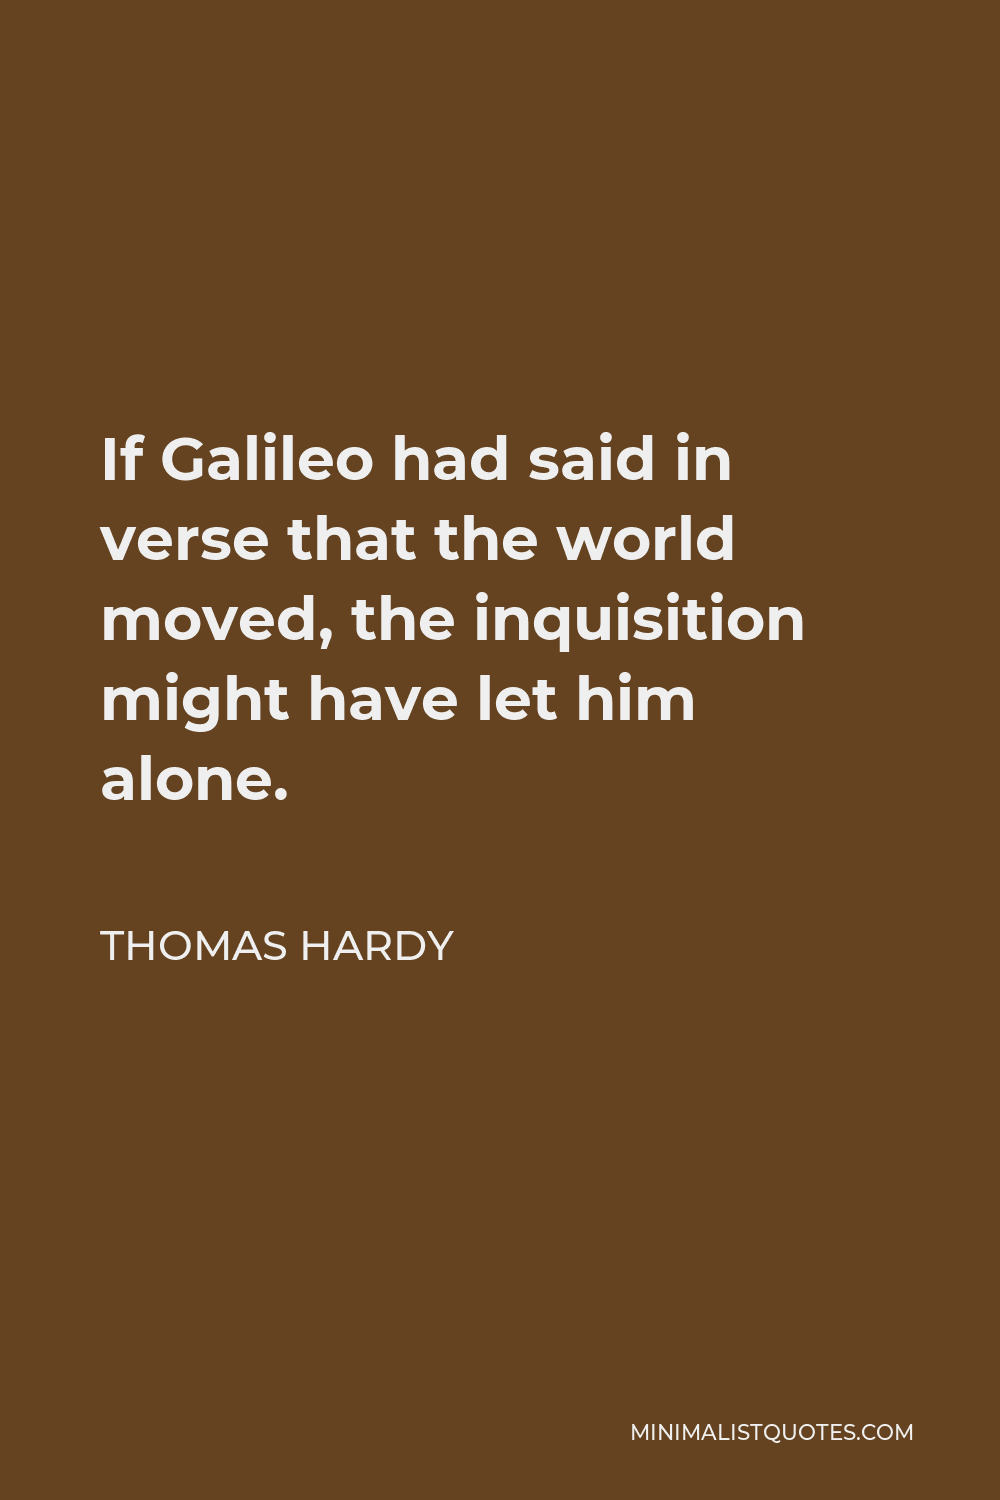 Thomas Hardy Quote - If Galileo had said in verse that the world moved, the inquisition might have let him alone.